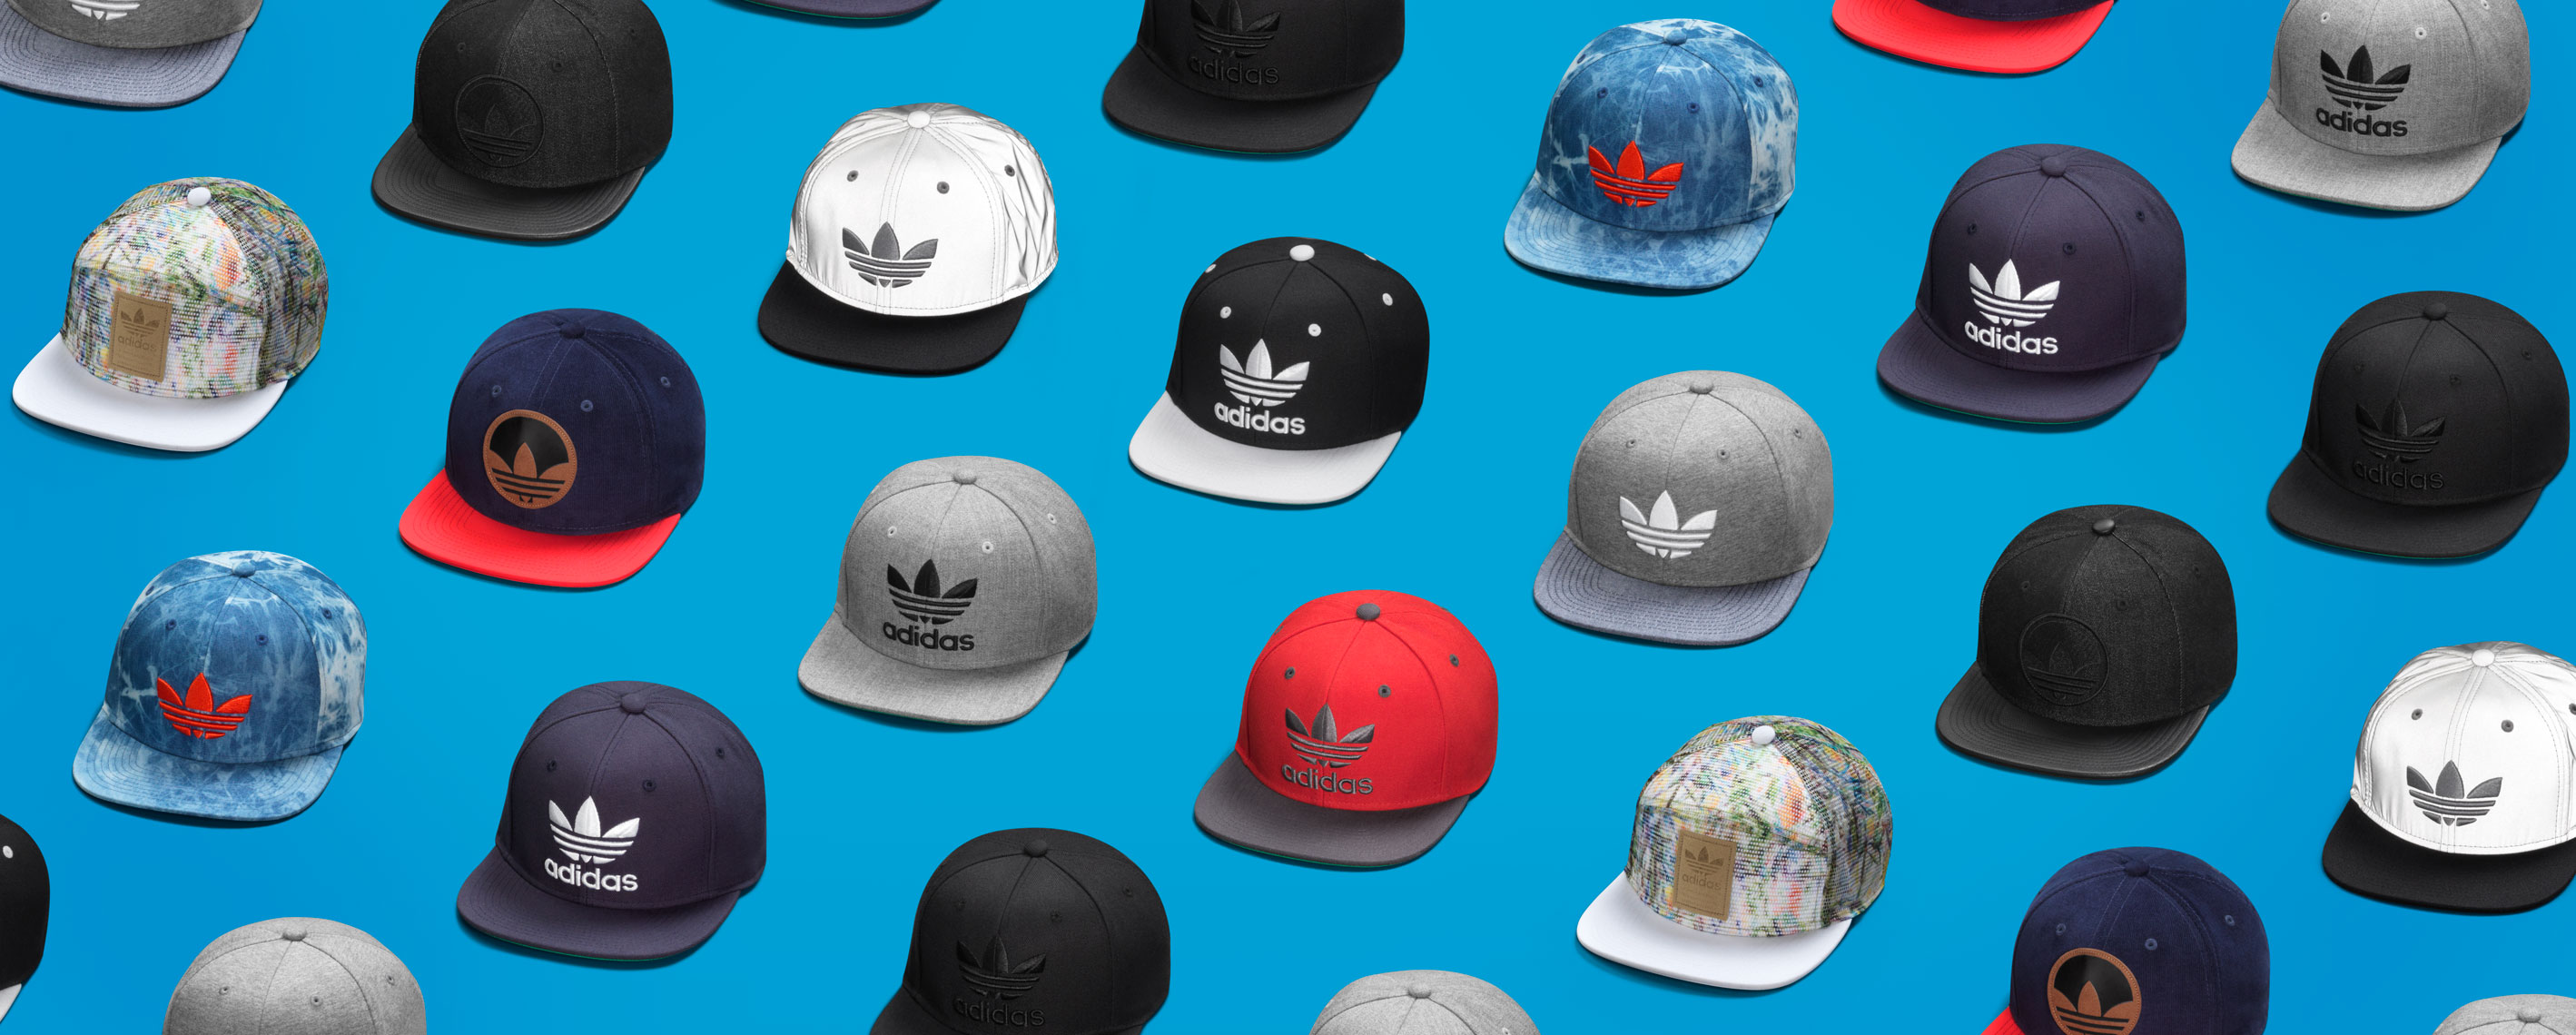 assortment of colorful adidas hats